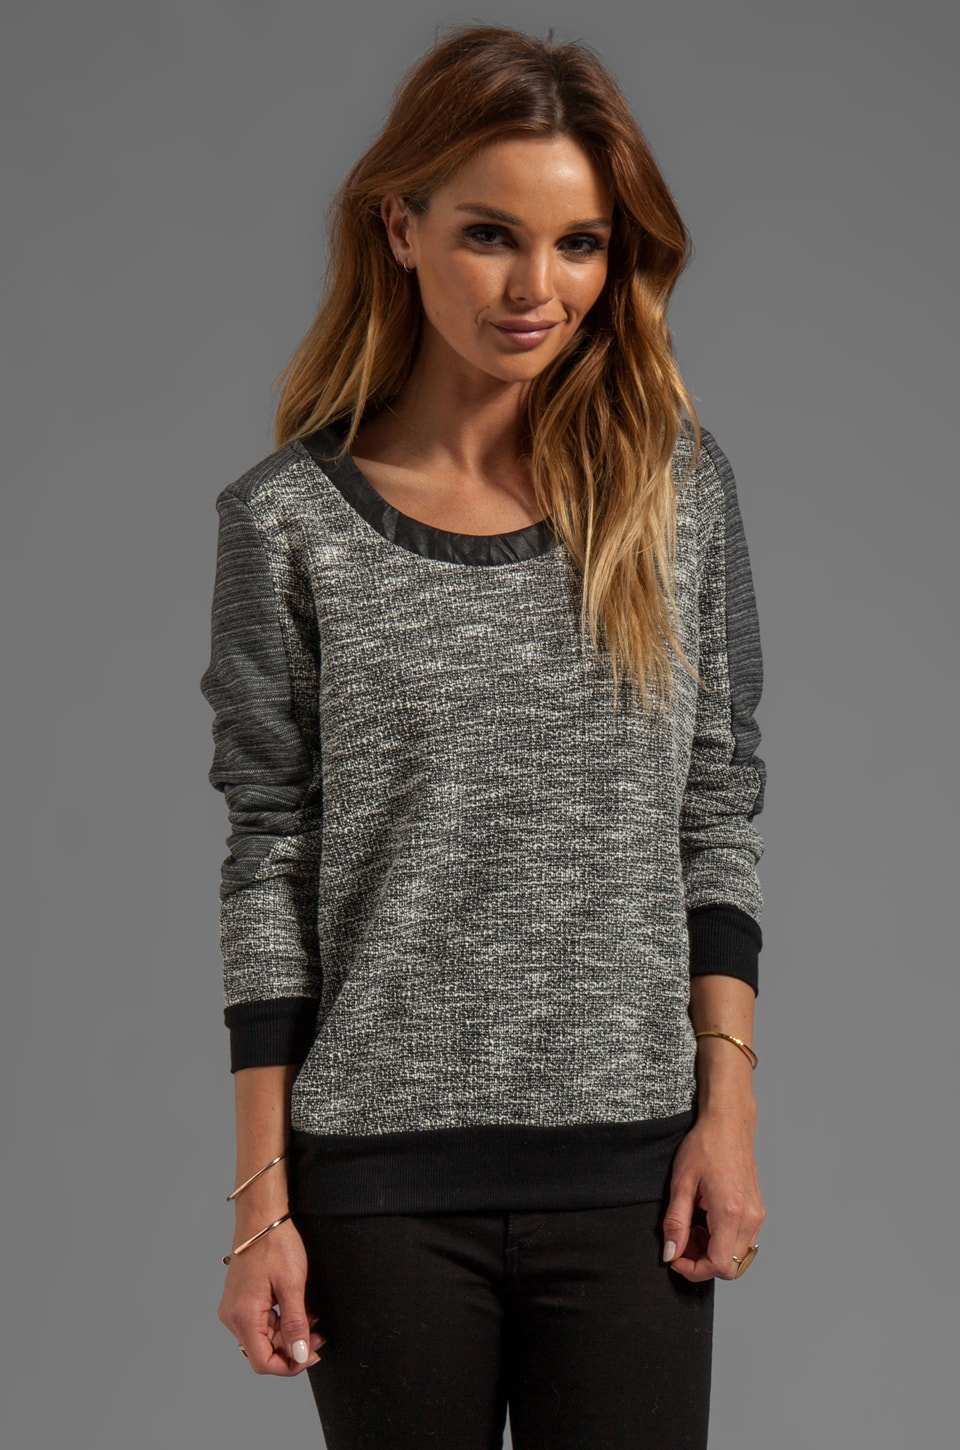 Lanston Tweed Pullover in Pepper